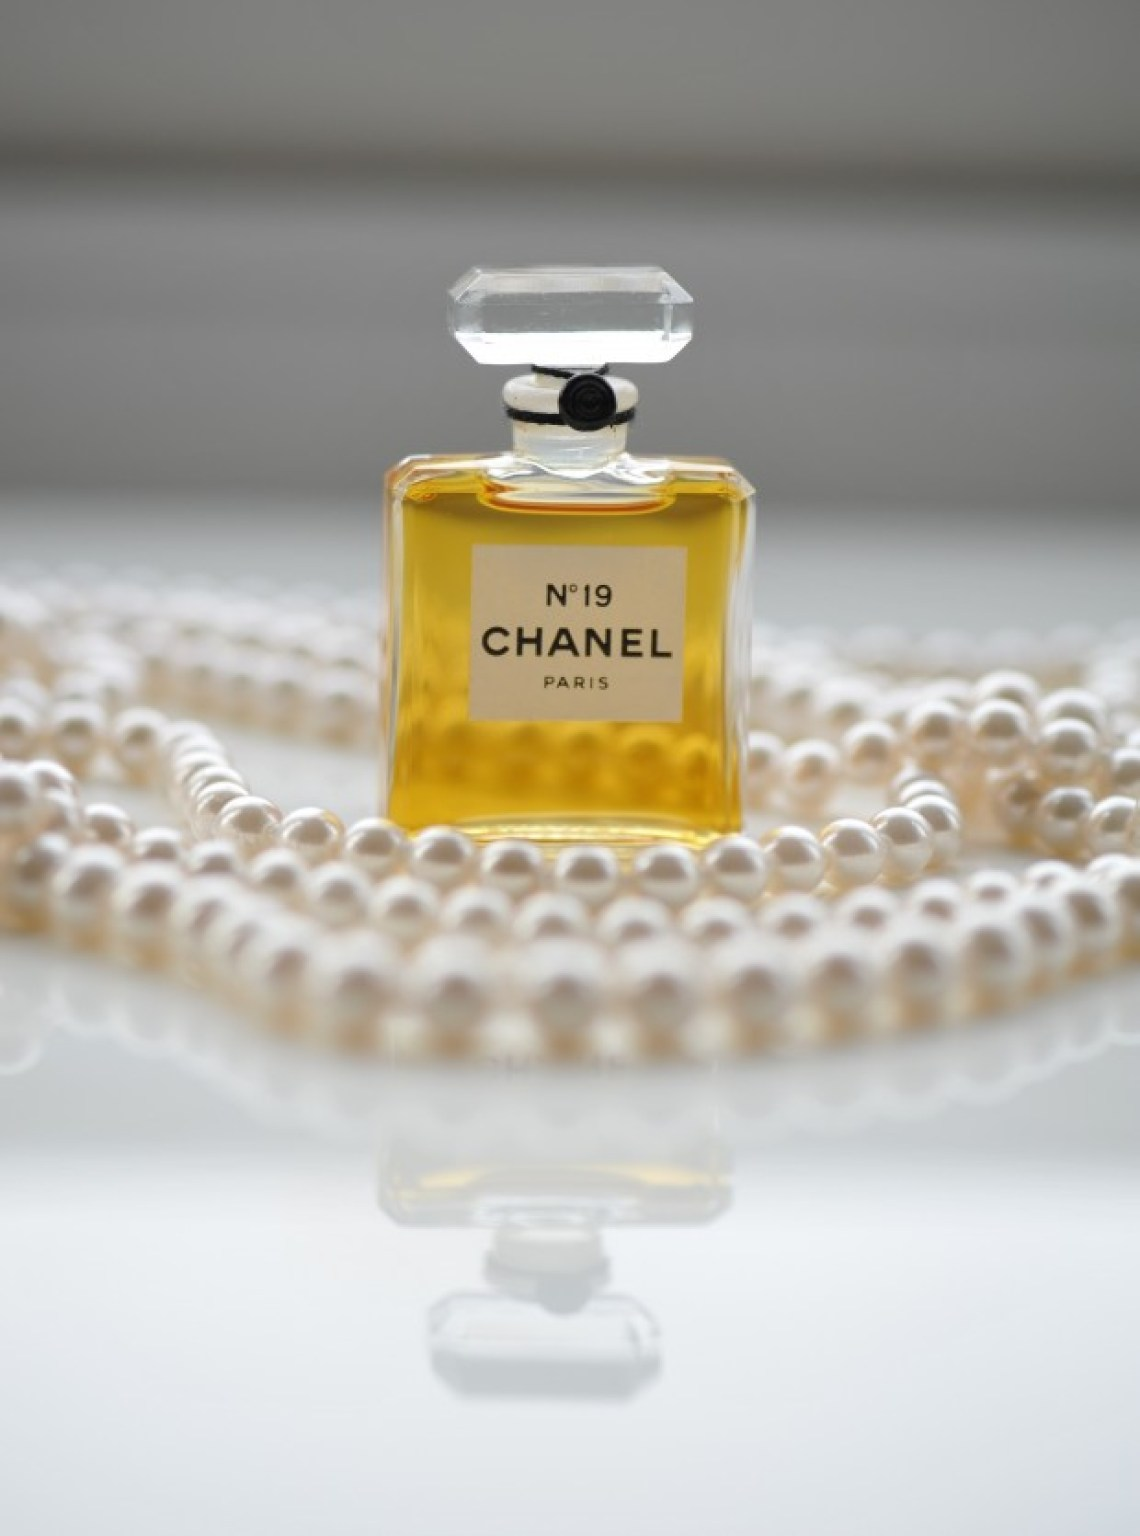 Chanel No. 19 and pearls